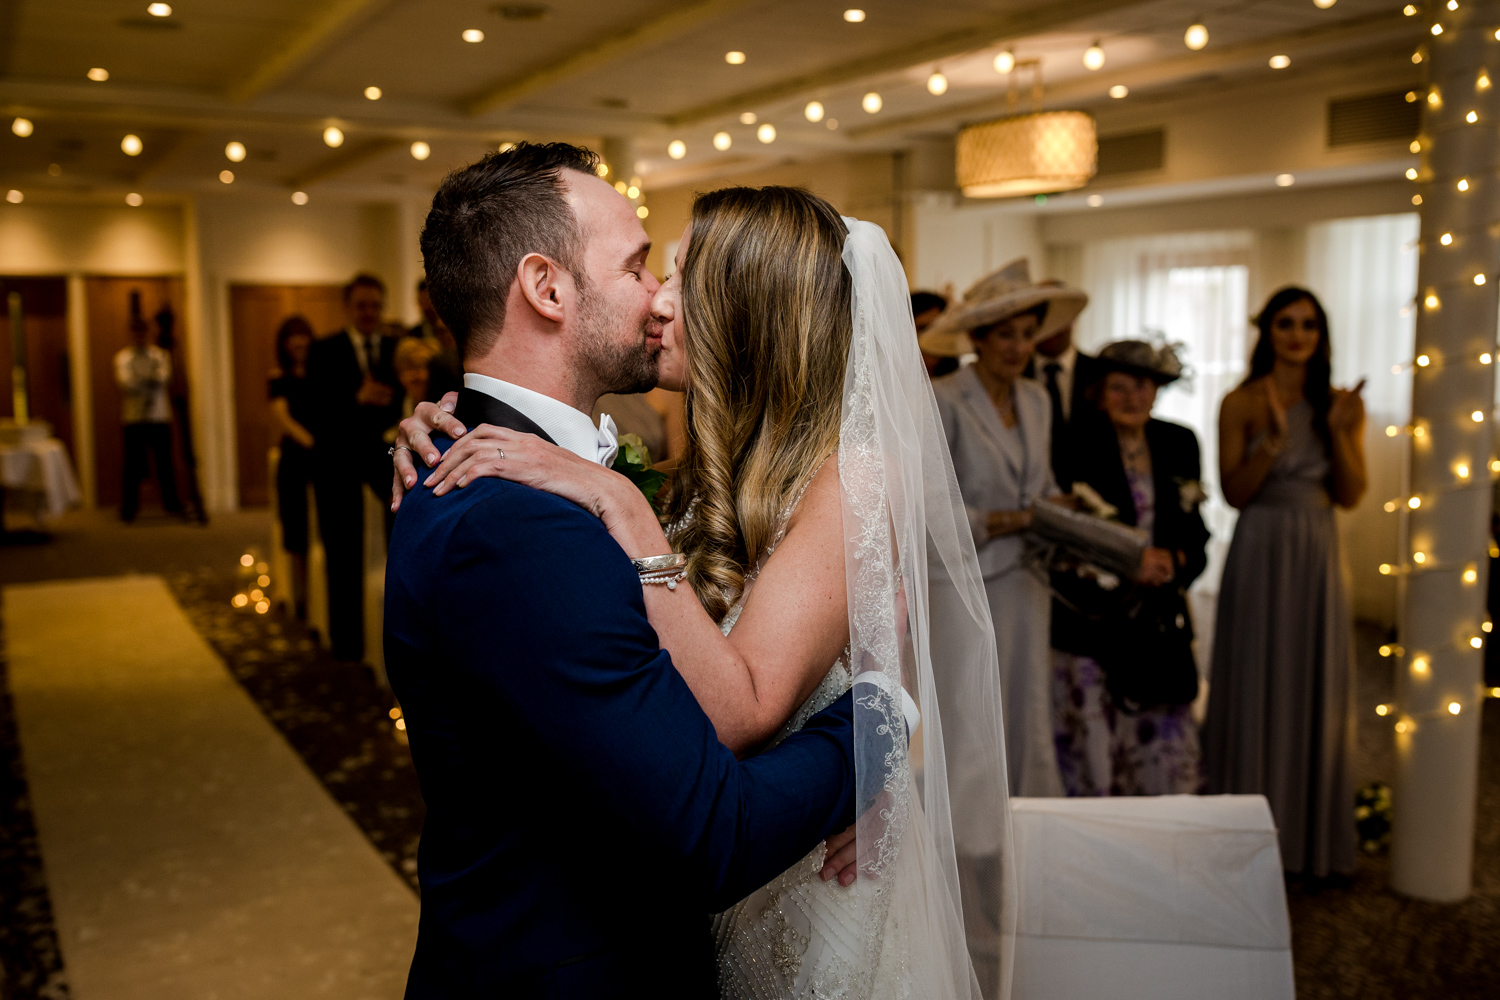 The bride and groom kissing during a winter wedding at Stanley House